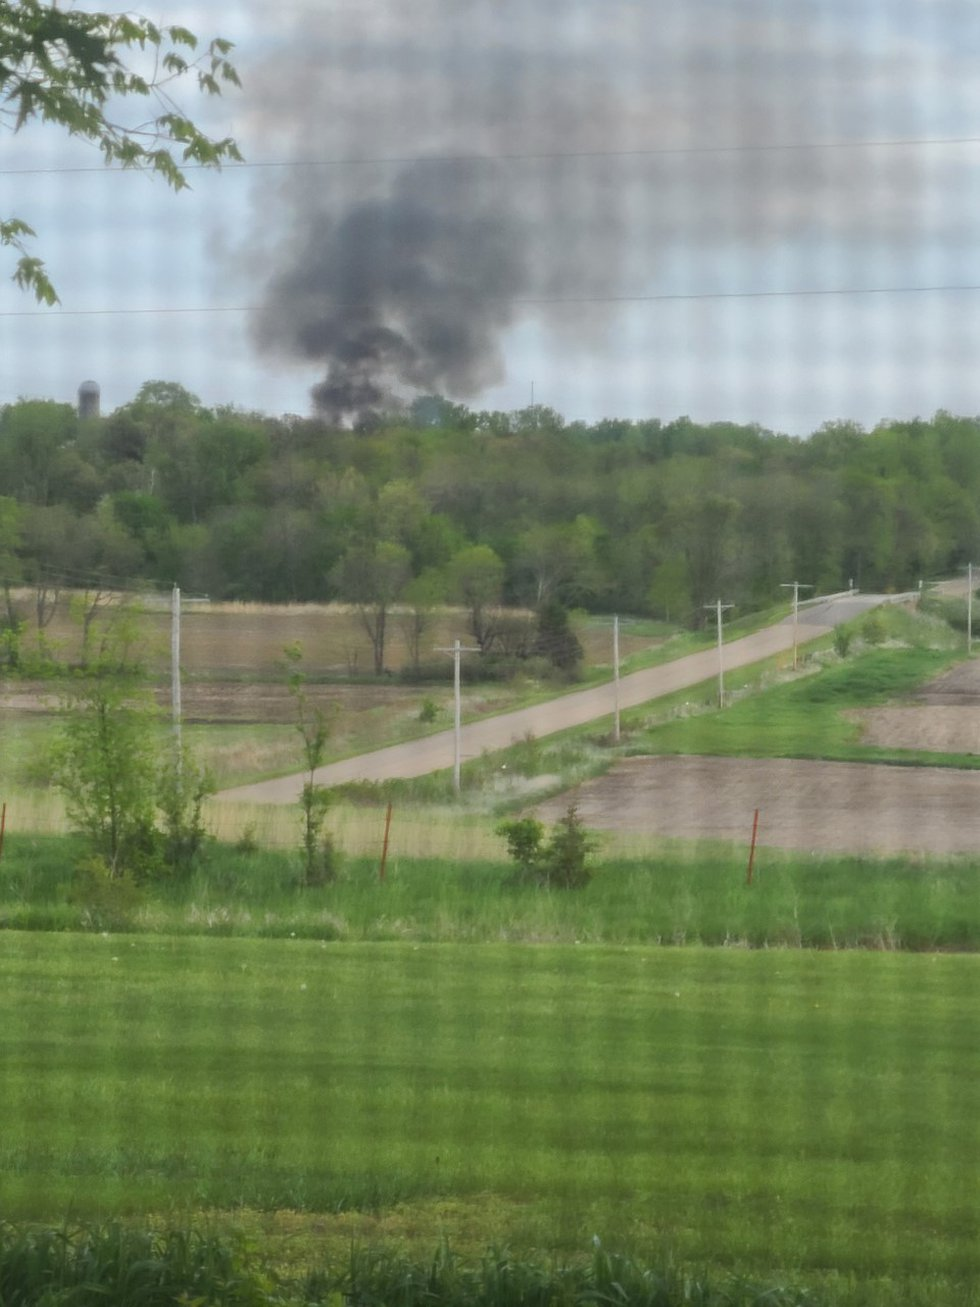 The Jackson Co. Sheriff's Office has identified the man killed in an explosion that leveled a...